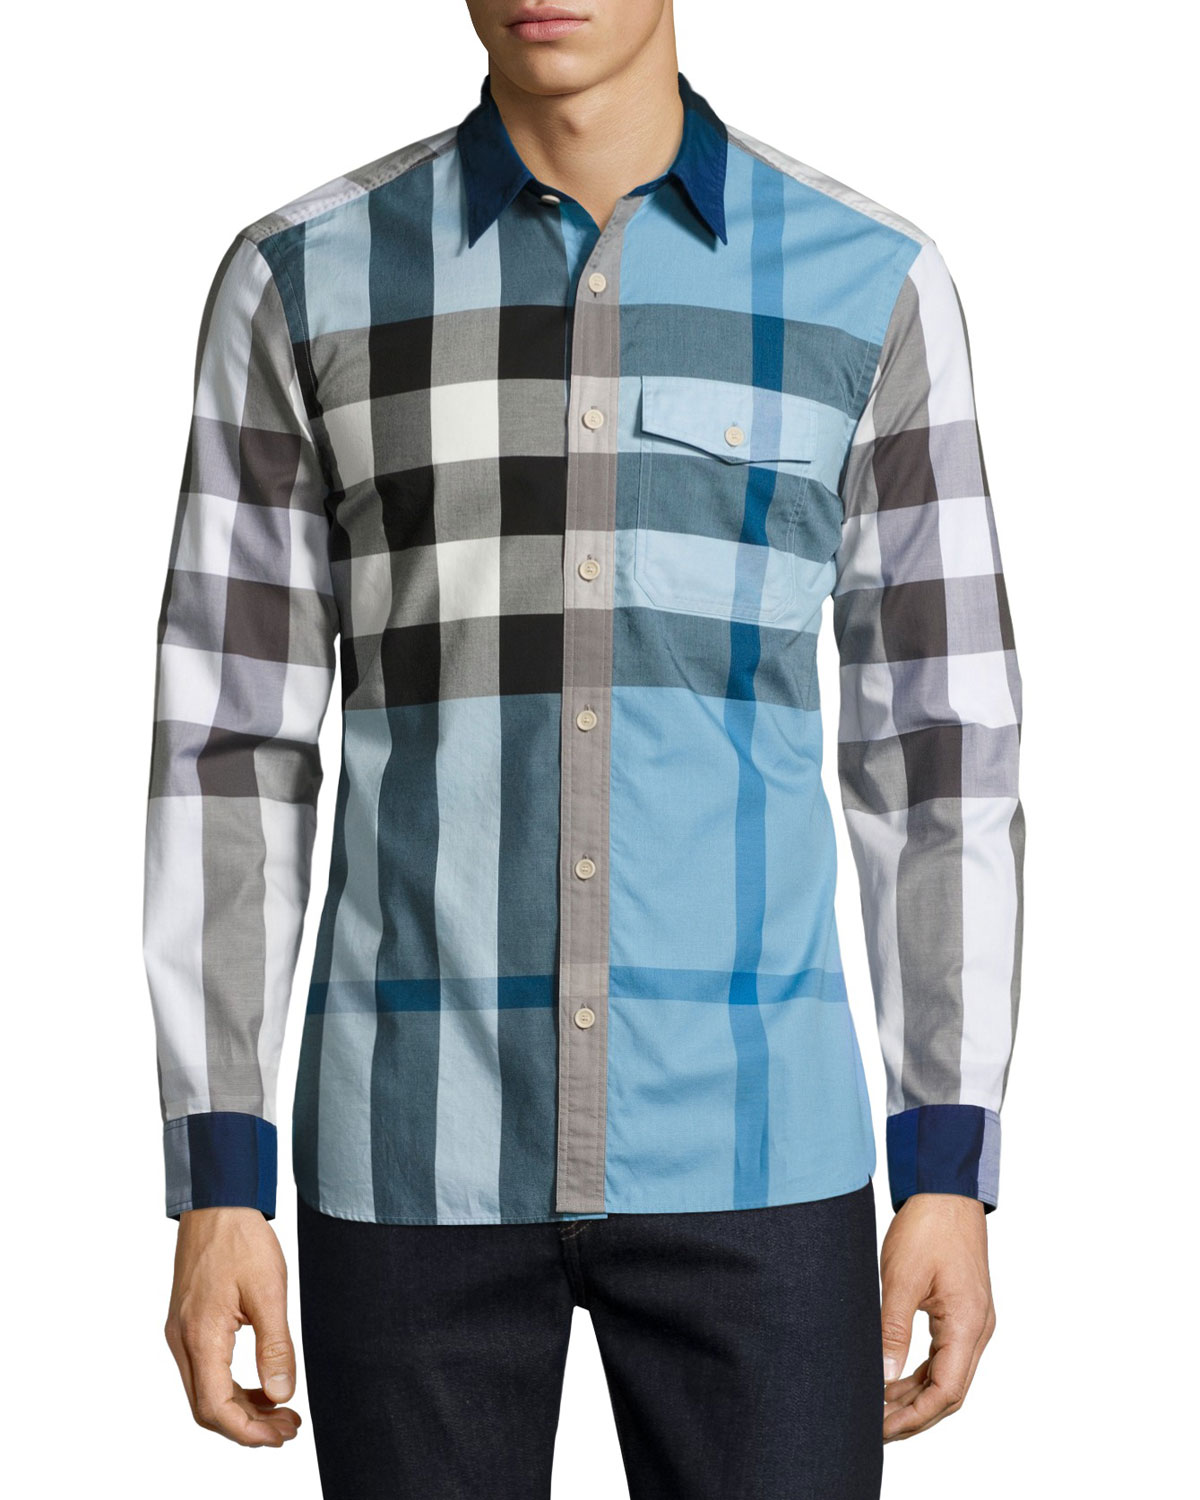 Clandon Check Sport Shirt, Sky